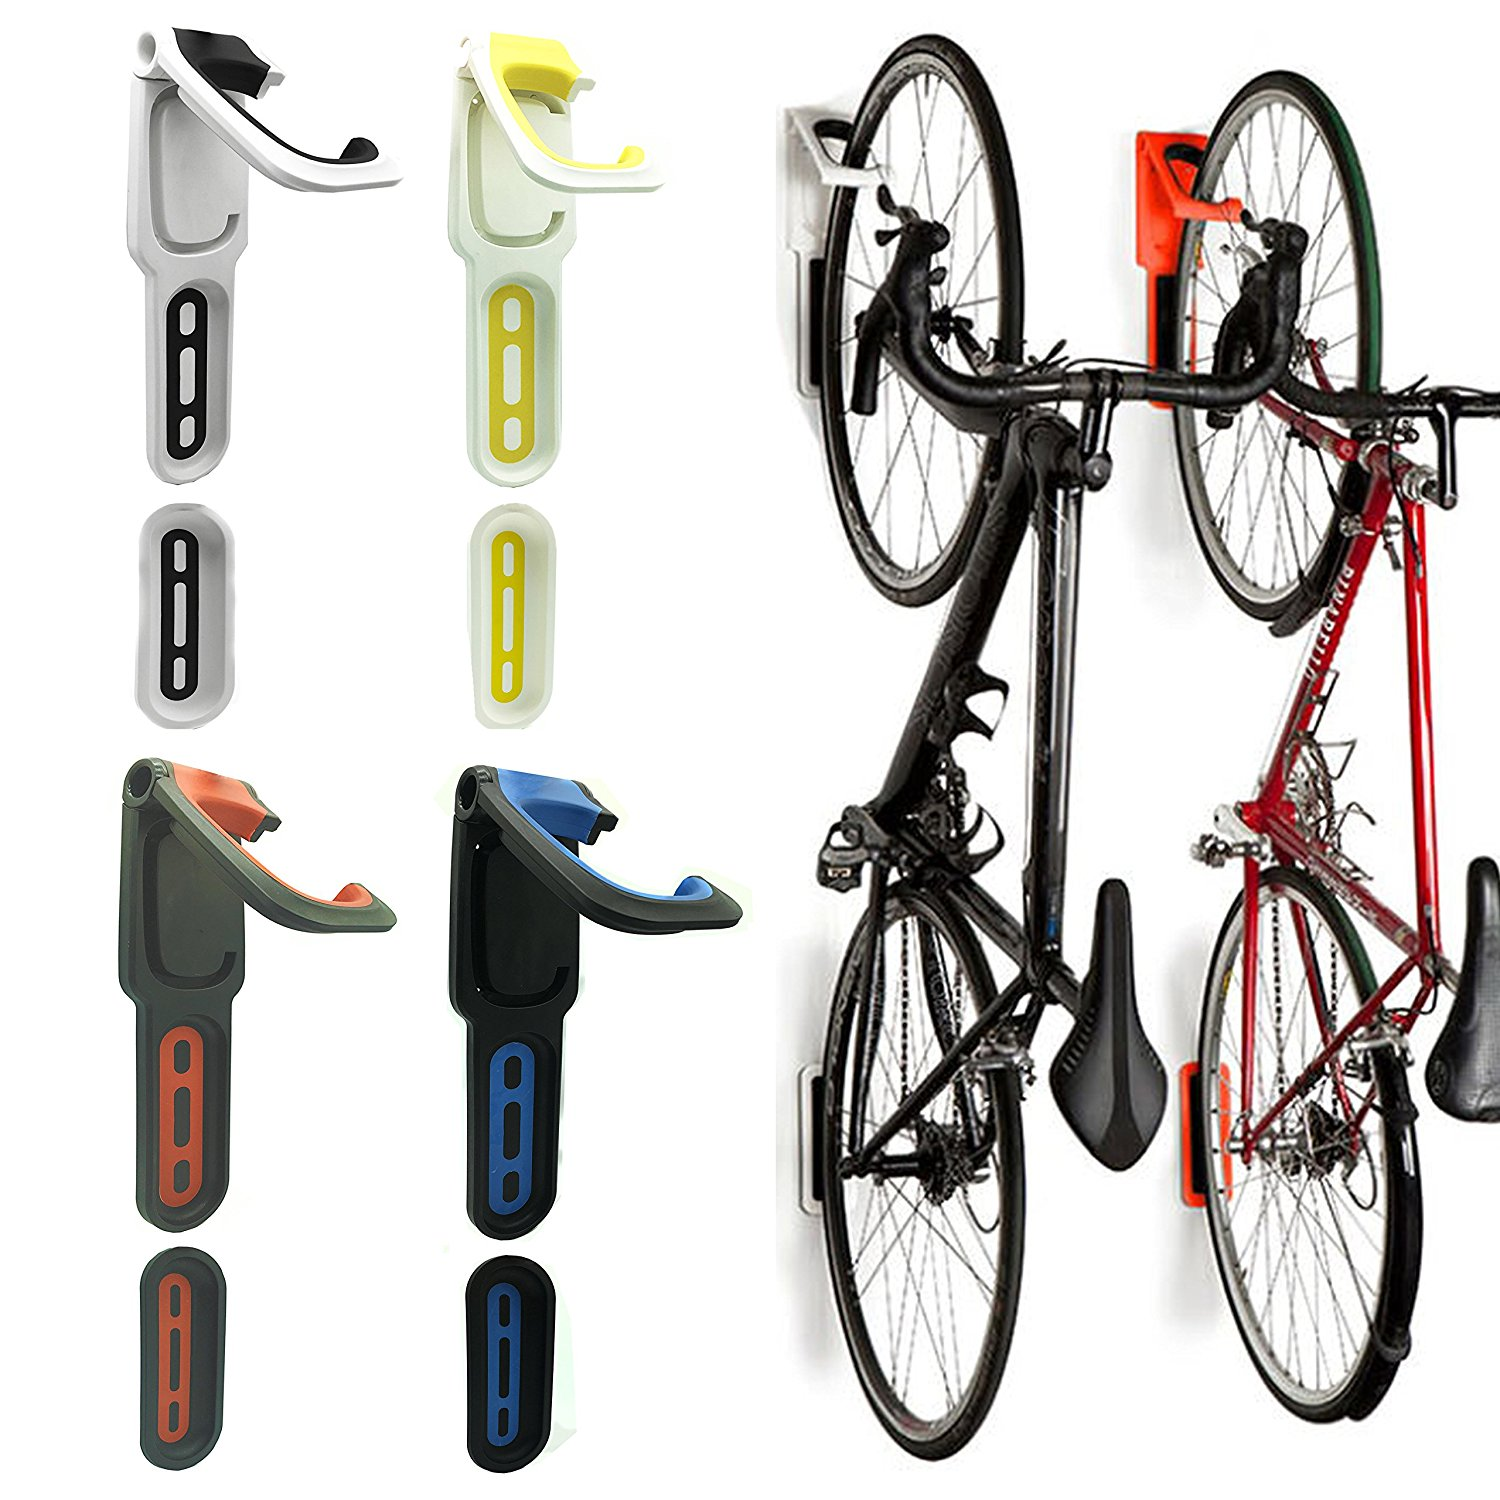 6056afc6d3a Get Quotations · Reliancer 3 Color Foldable Vertical Bike Rack Wall Mounted  Bicycle Cycle Storage Rack Single Bike Hook